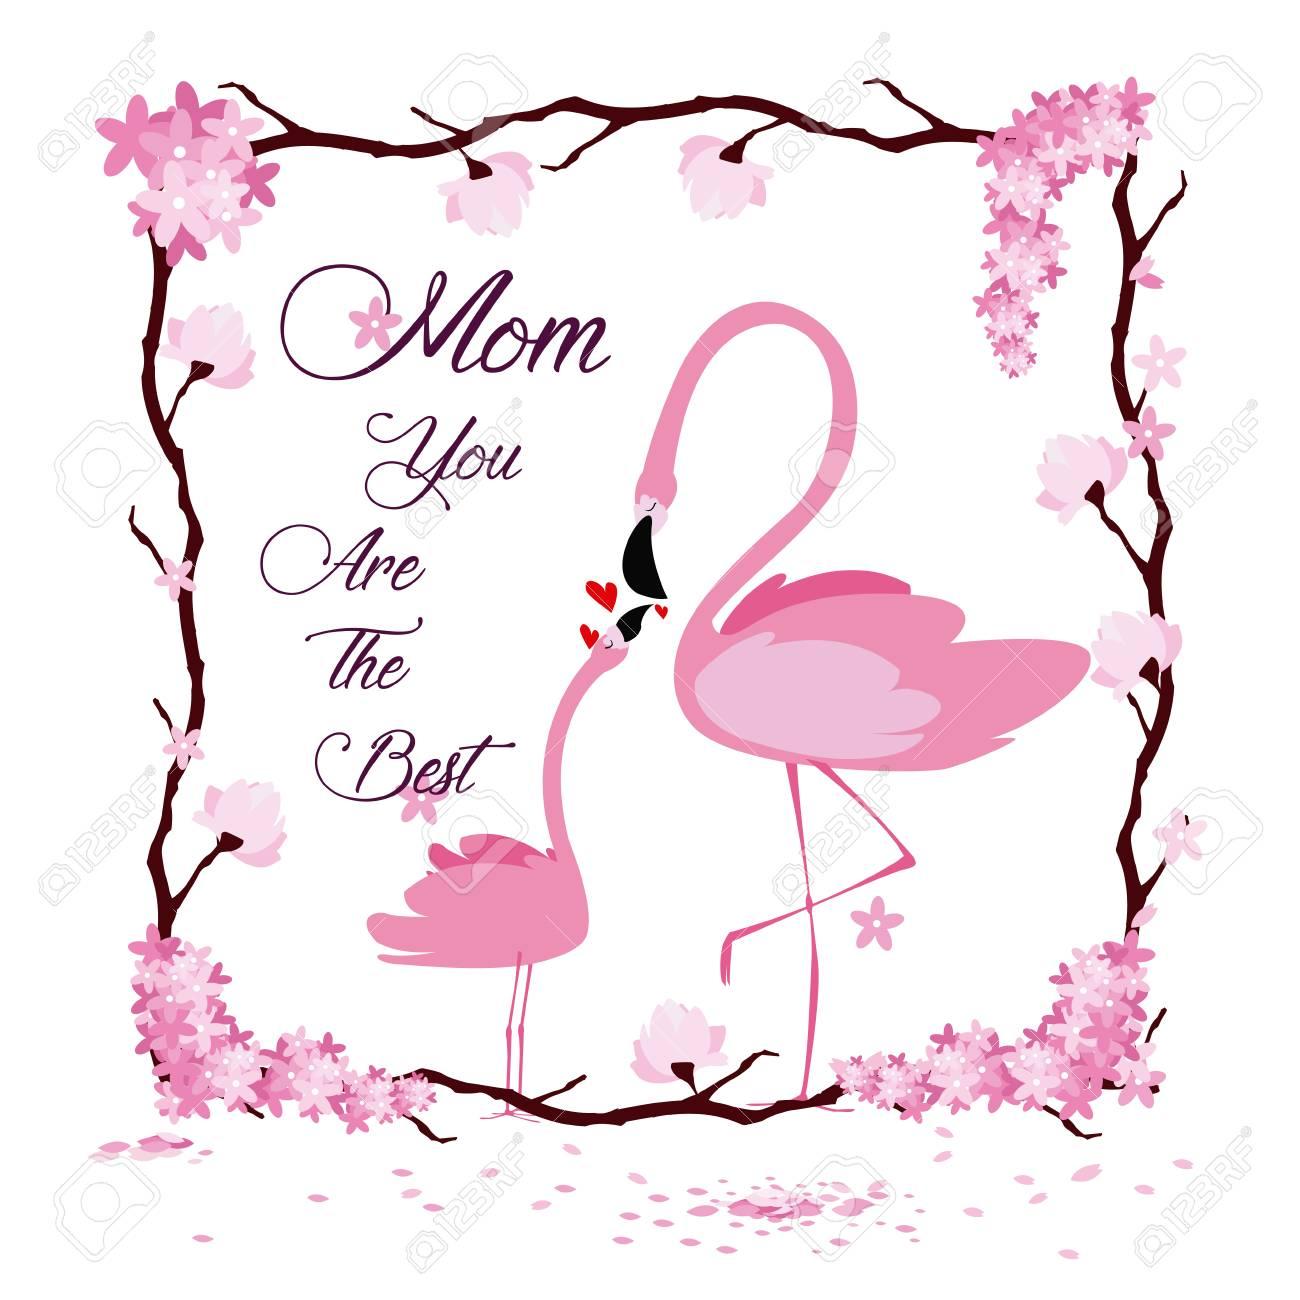 hight resolution of happy mothers day flamingo cartoon icon vector illustration graphic design stock vector 95405919